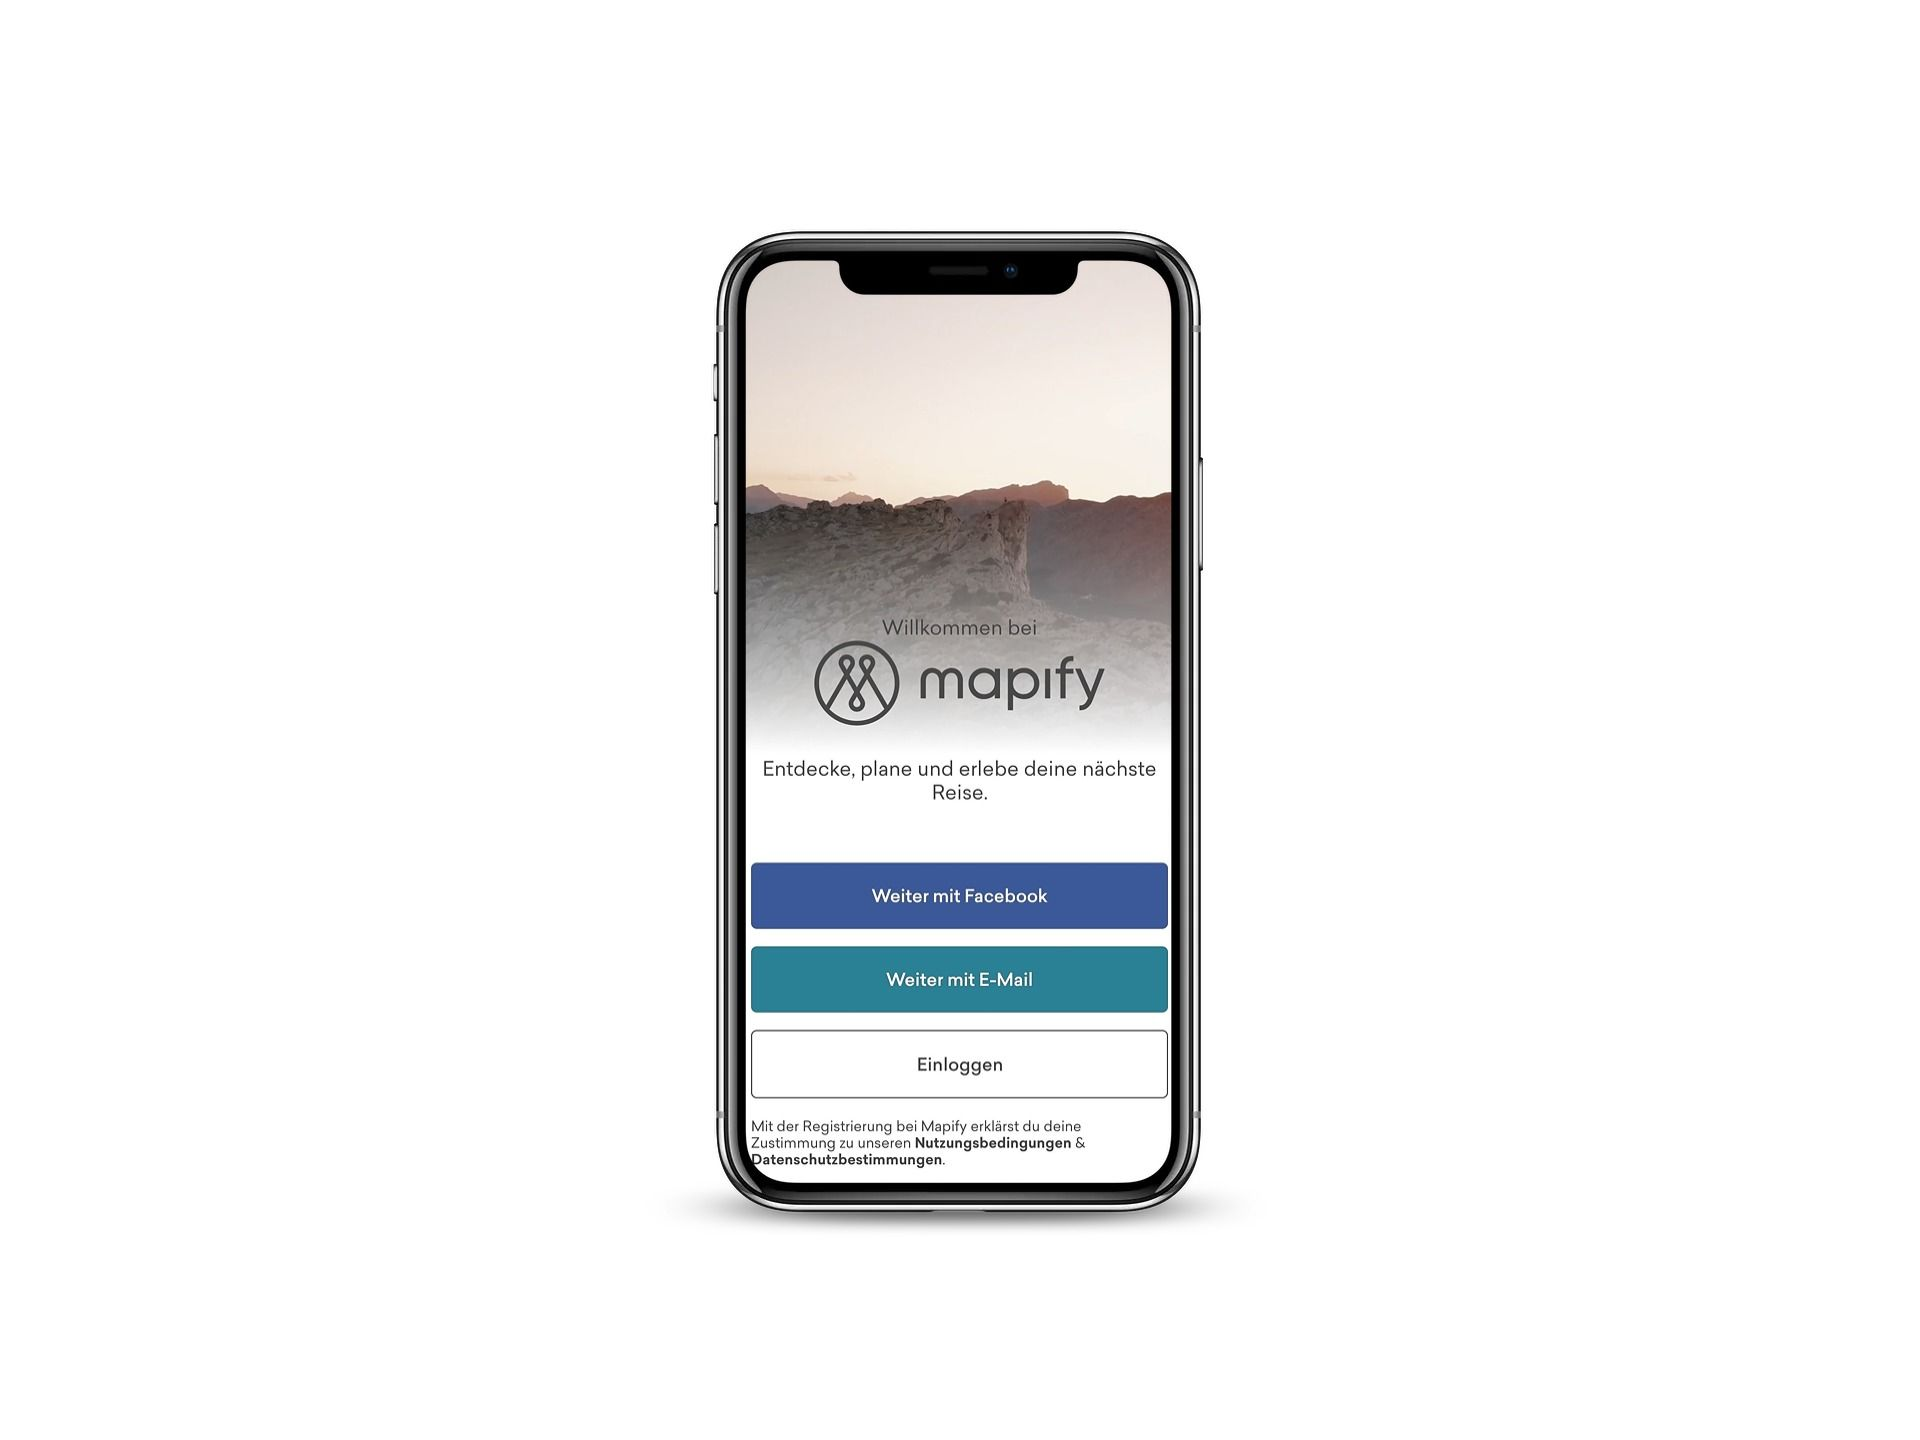 Mapify Galerie